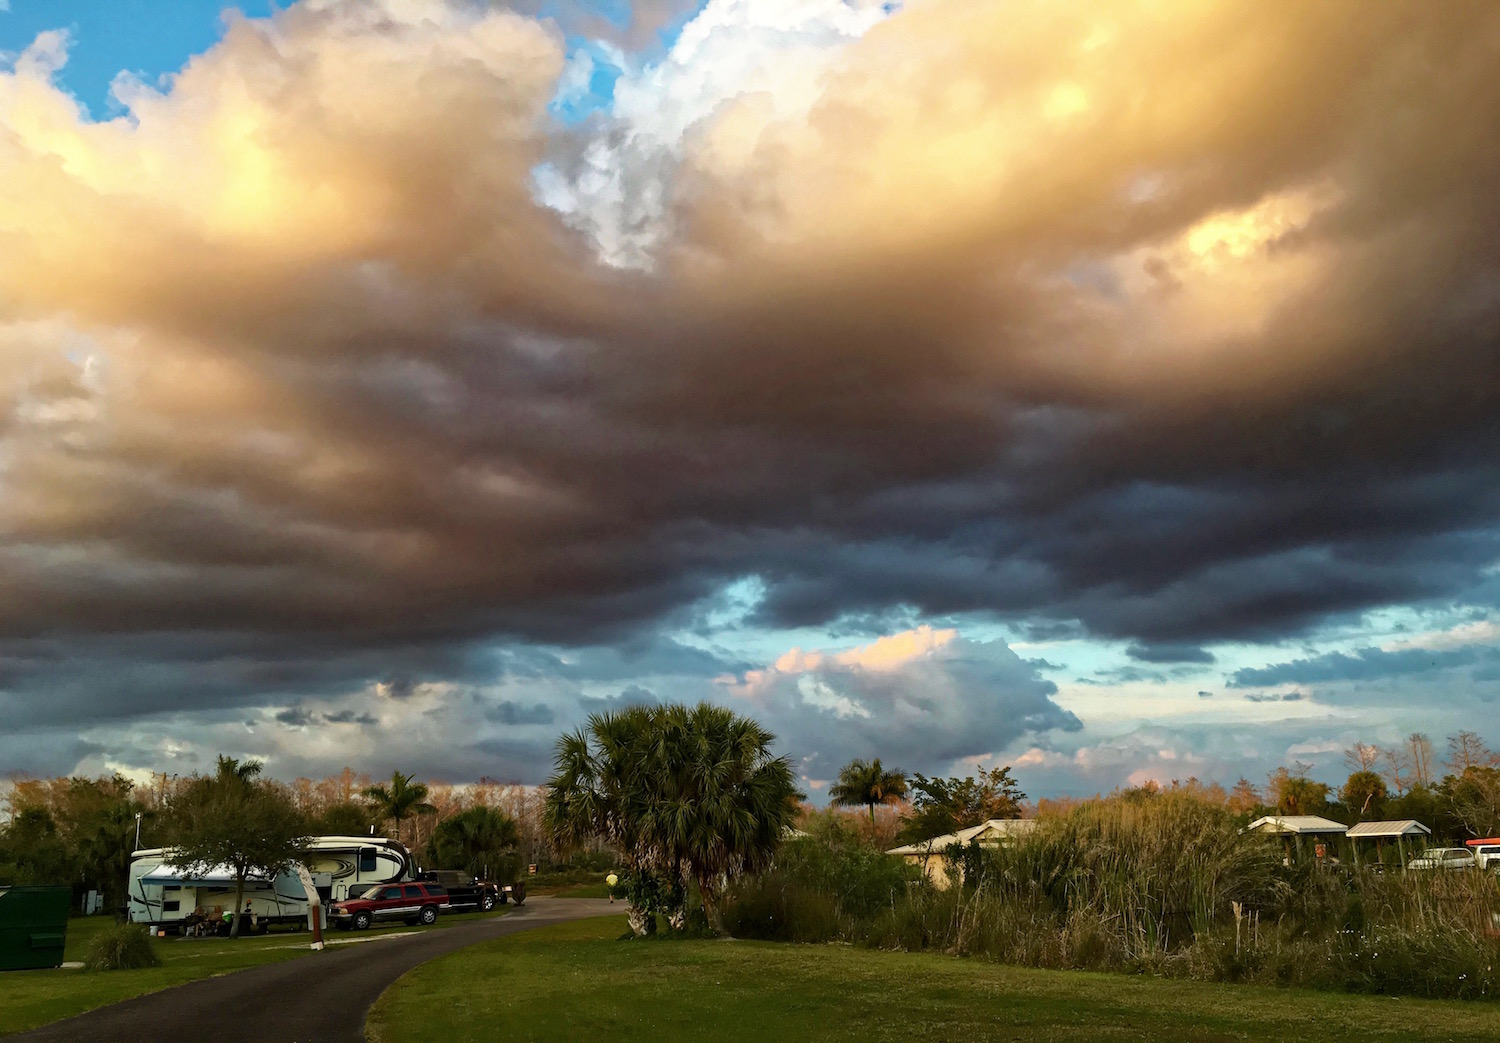 An extraordinary sky at a campground in the Everglades.